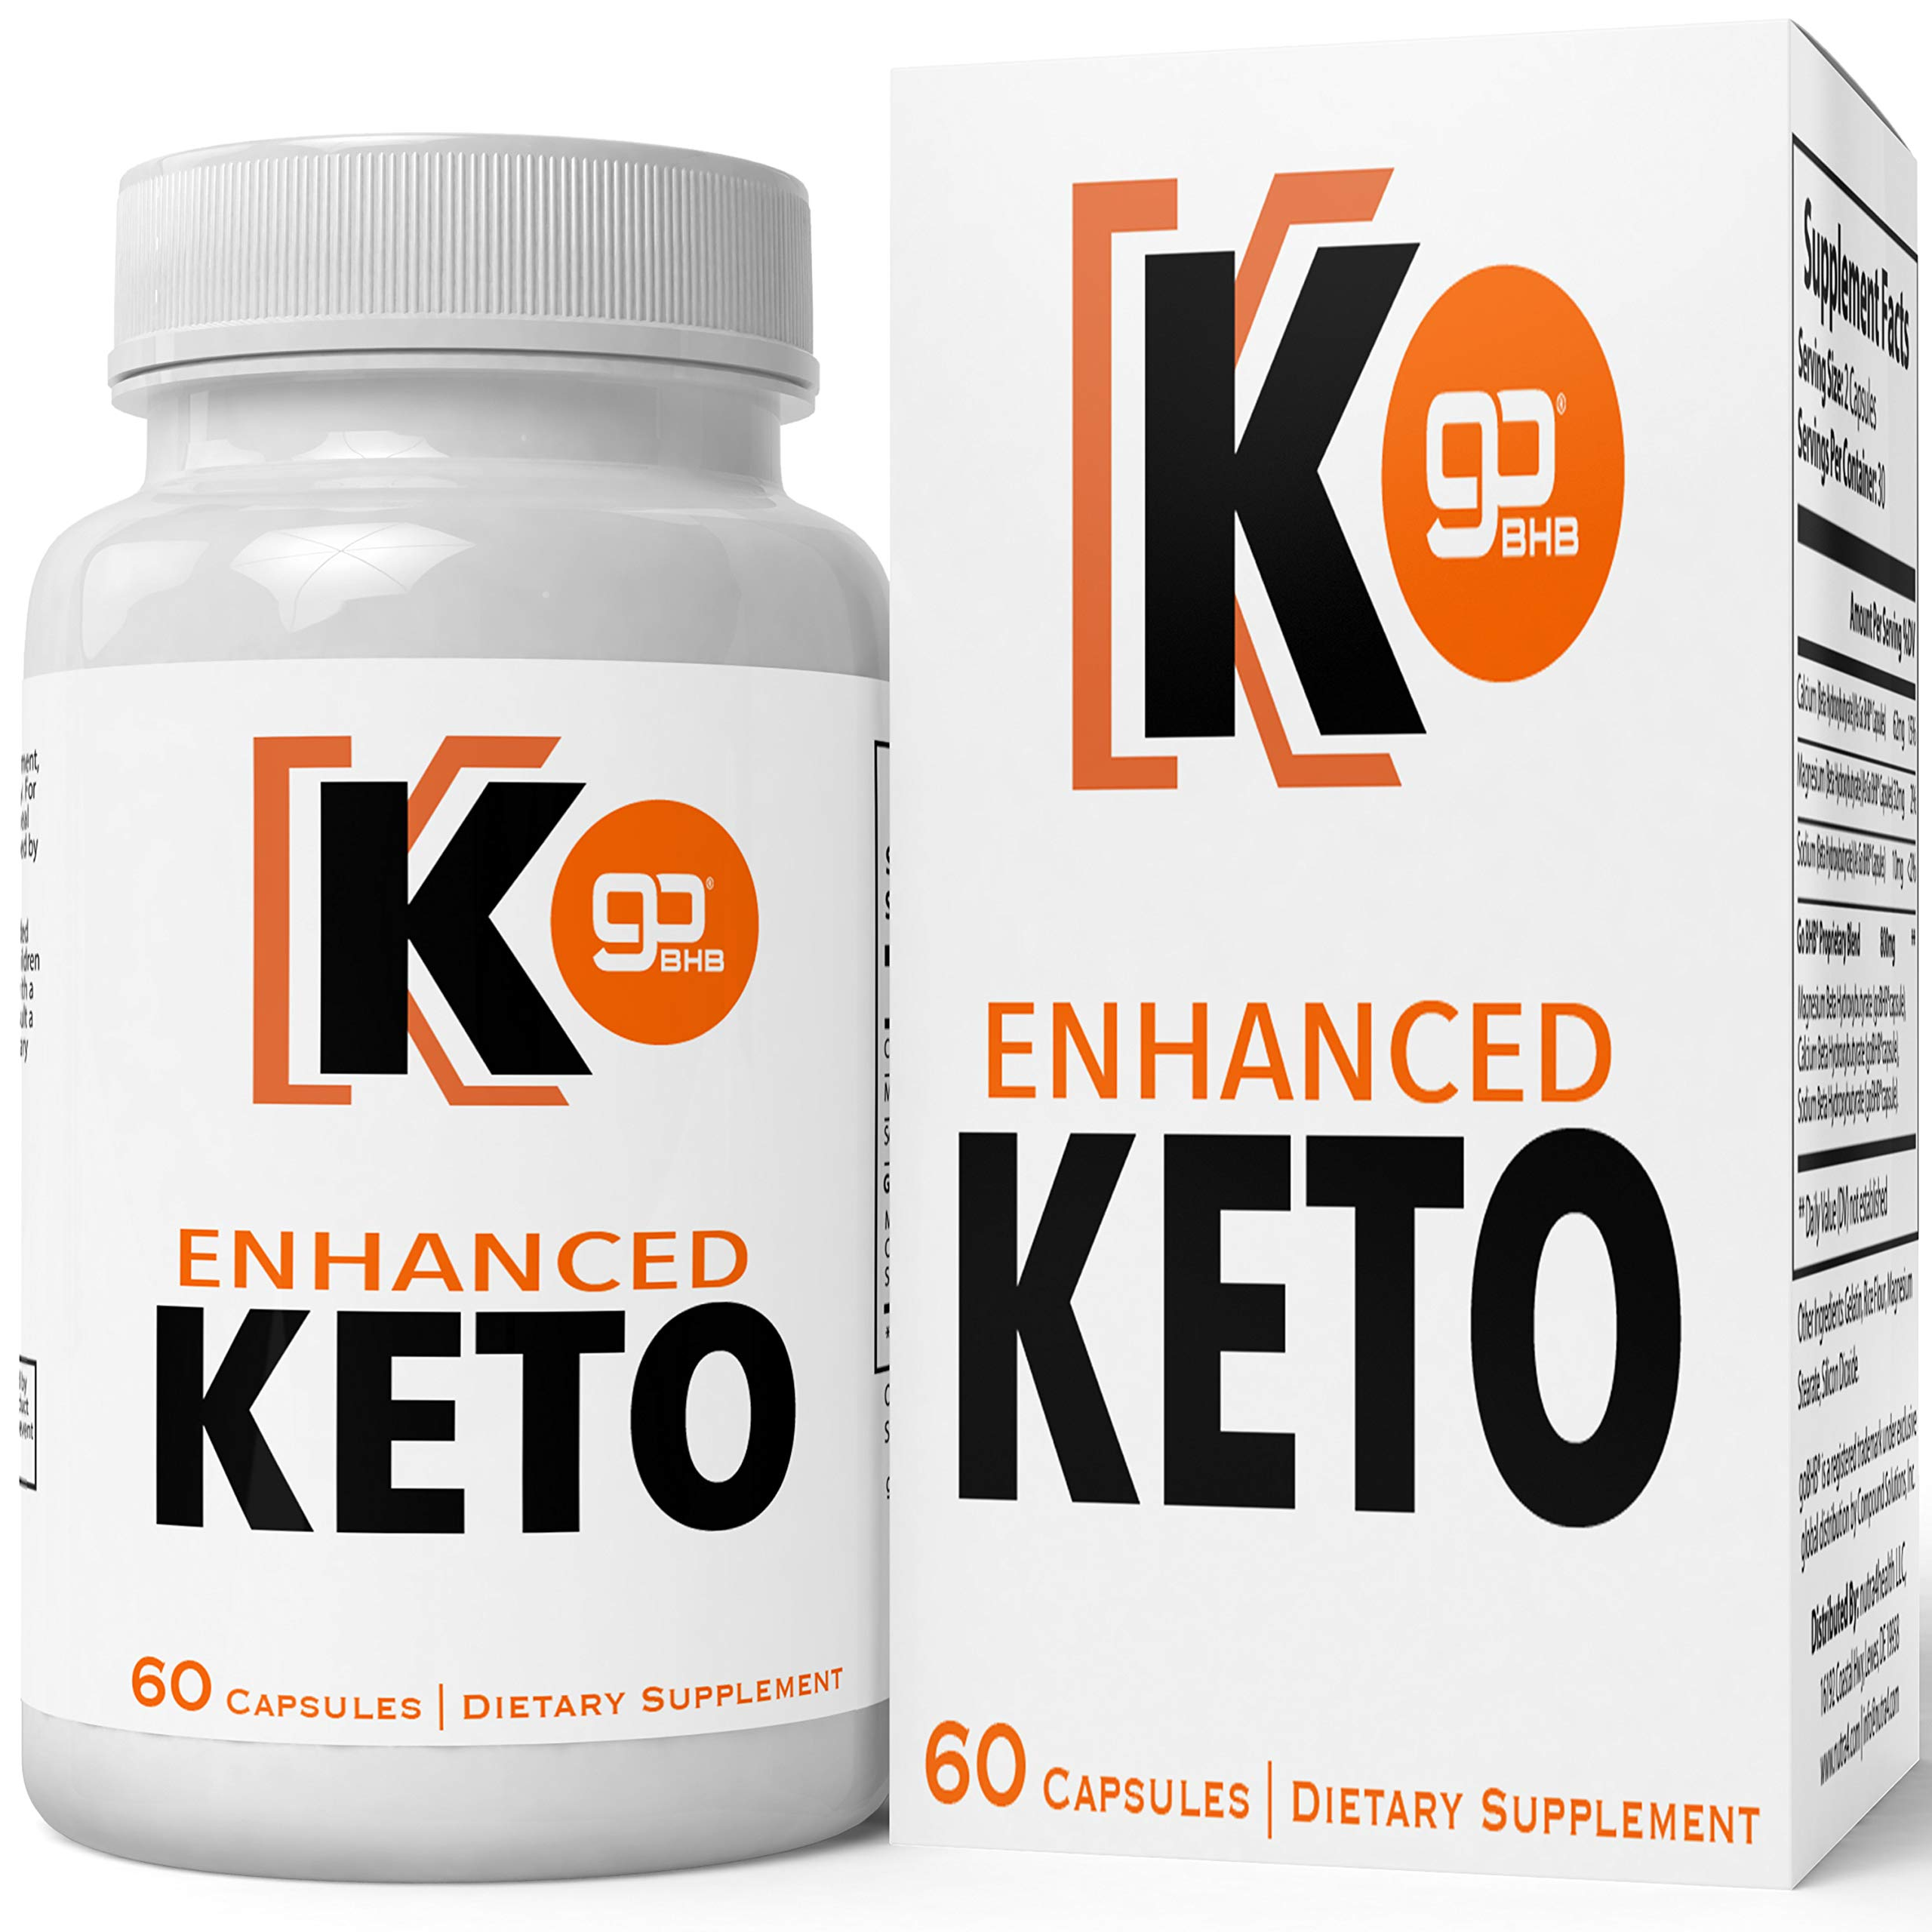 Enhanced Keto Advanced Weight Loss Pills, Extreme Natural Ketogenic Burn Fat Supplement, 800 mg Formula with New True Slim Supplements GO BHB Salts Formula, Appetite Suppressant Capsules by nutra4health LLC